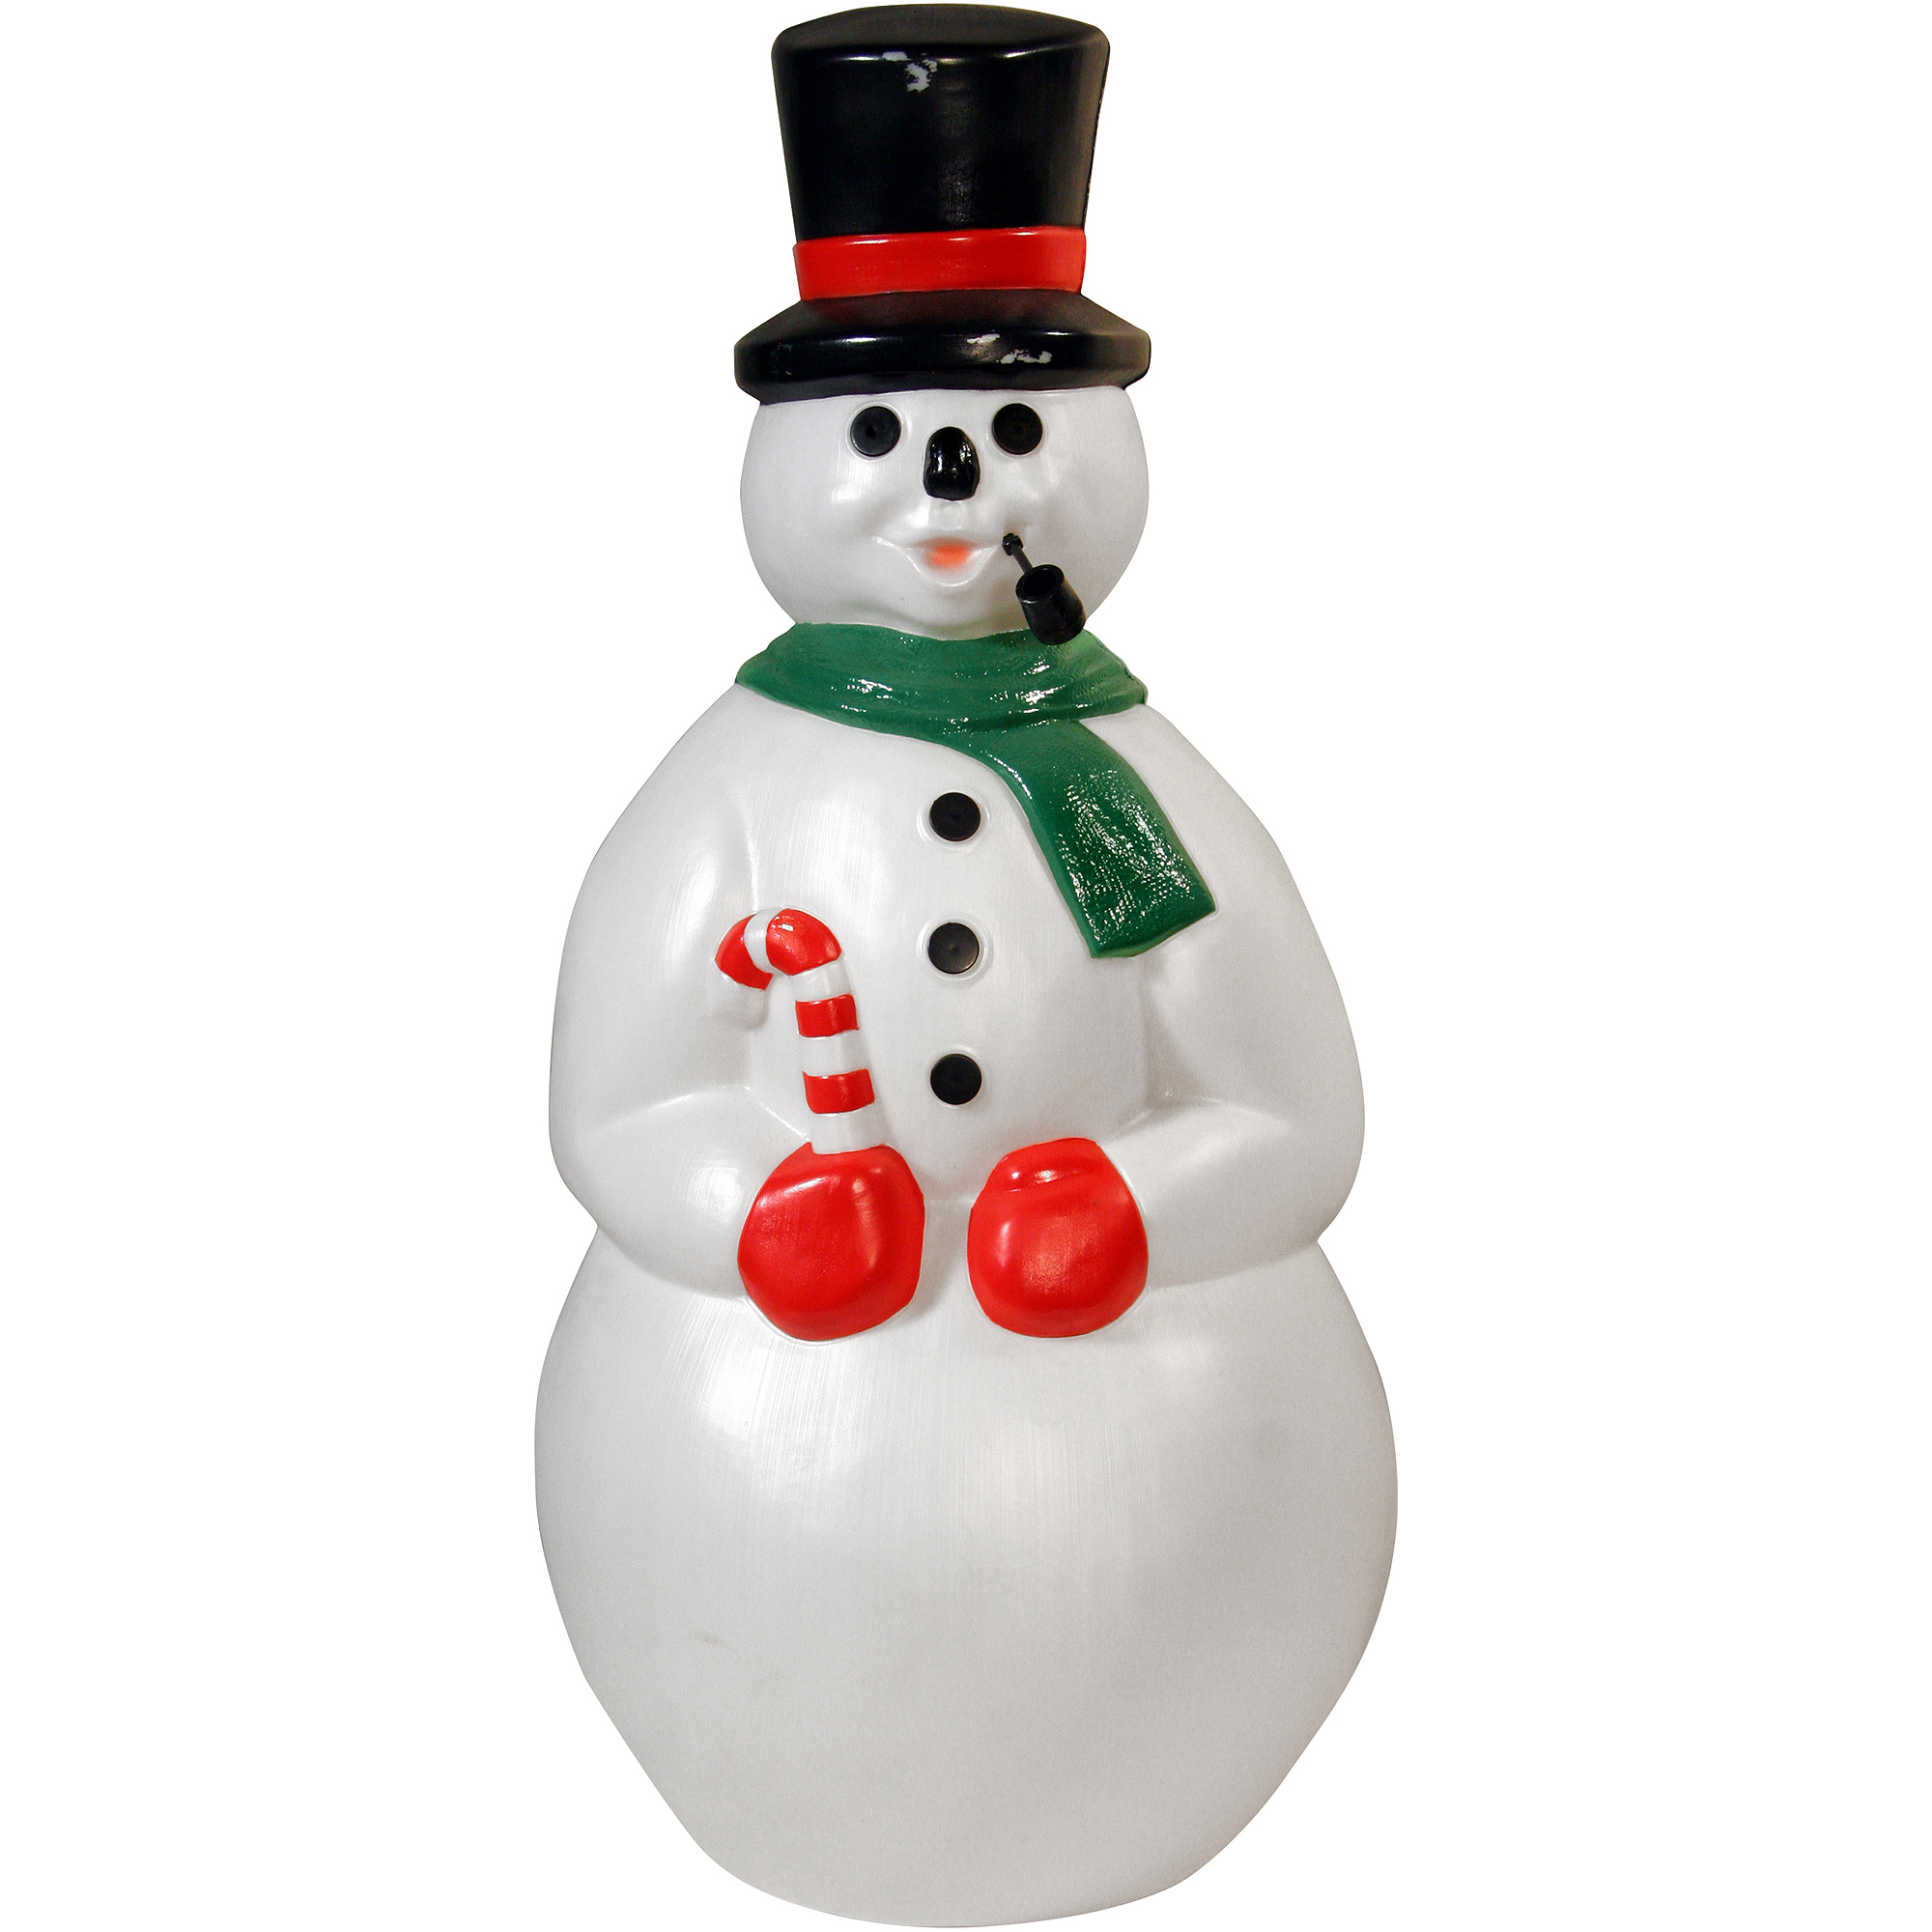 34 snowman with pipe blow mold walmartcom - Blow Mold Plastic Outdoor Christmas Decorations